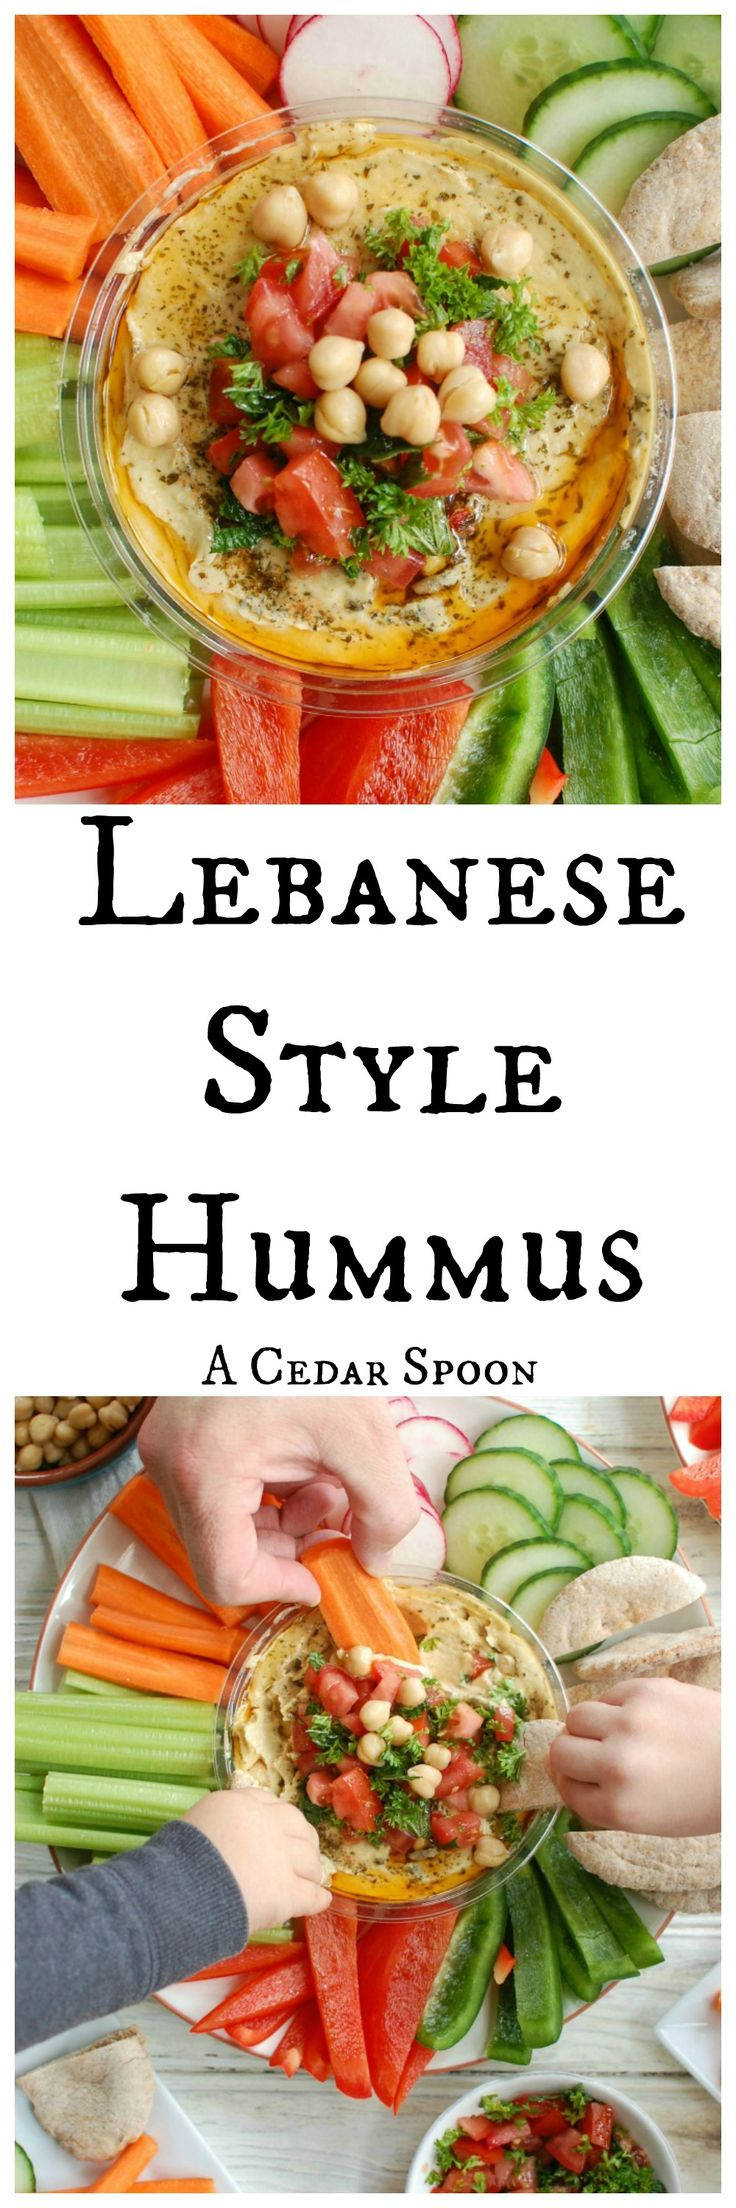 Lebanese Style Hummus is a simple twist on classic hummus using ingredients you already have.  Creamy hummus is topped with diced tomatoes, fresh parsley and mint, chickpeas, pine nuts and a squeeze of lemon juice. Serve this with a rainbow of vegetables and whole wheat pita. The perfect unofficial meal!// A Cedar Spoon